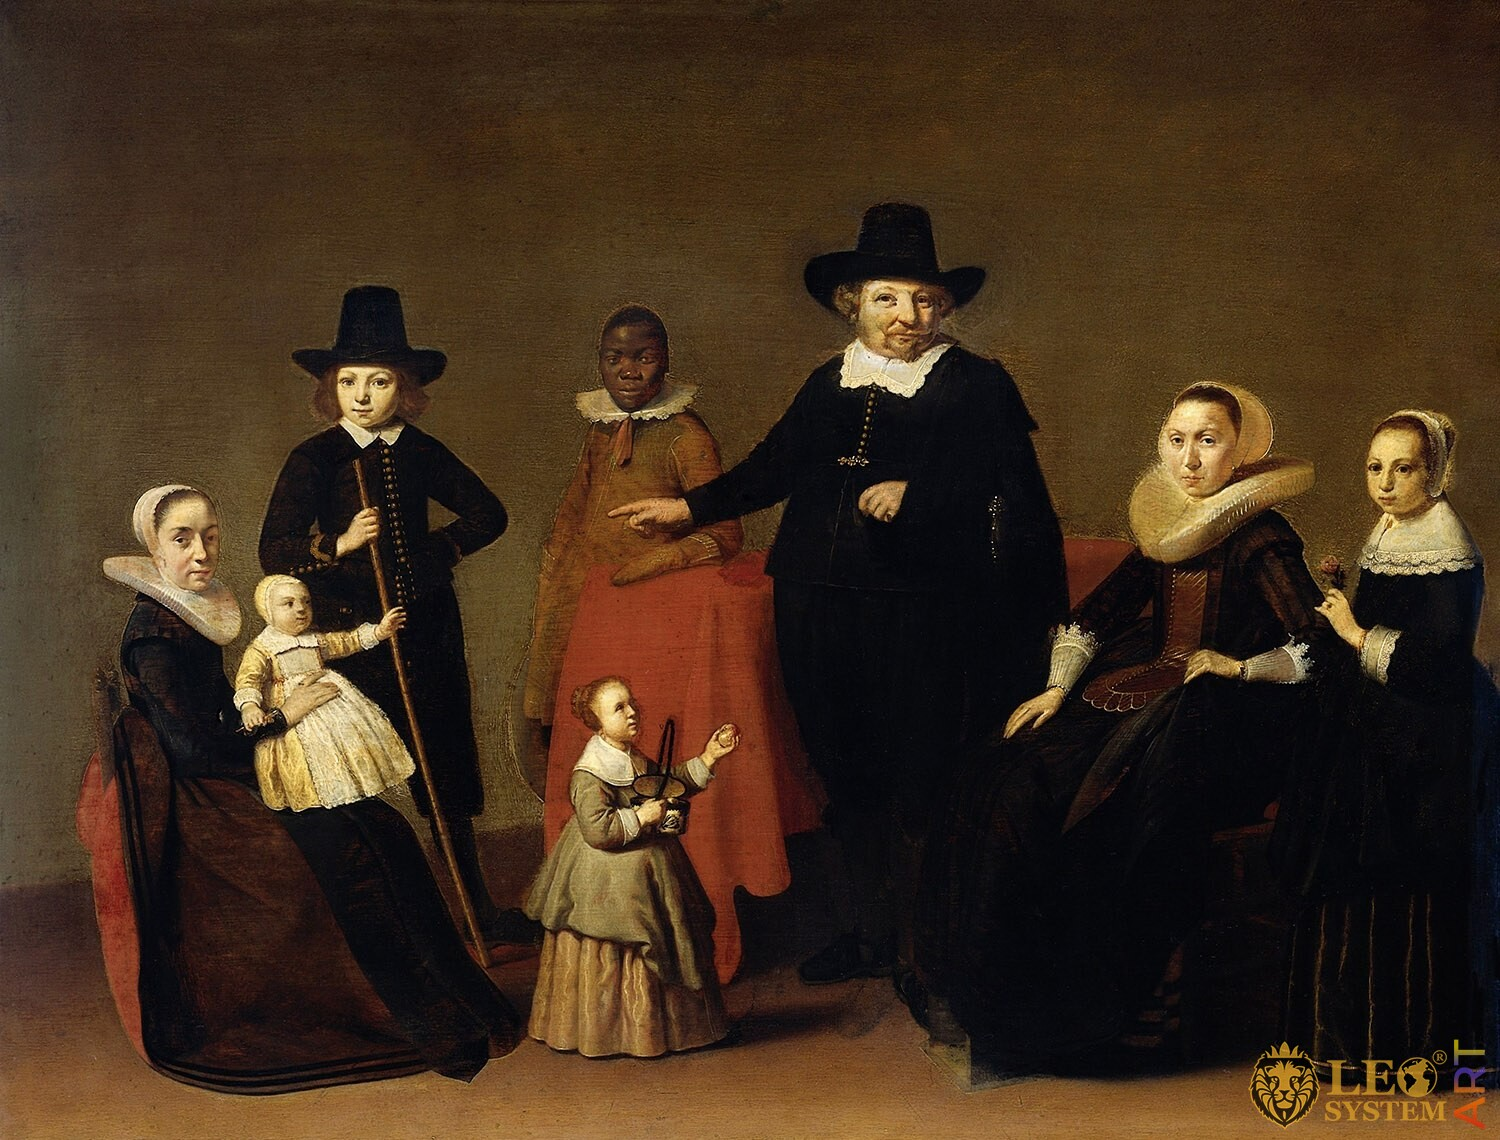 Family Group with a Black Man, Artist: Willem Cornelisz Duyster, 1631-1633, Amsterdam, Netherlands, Original painting